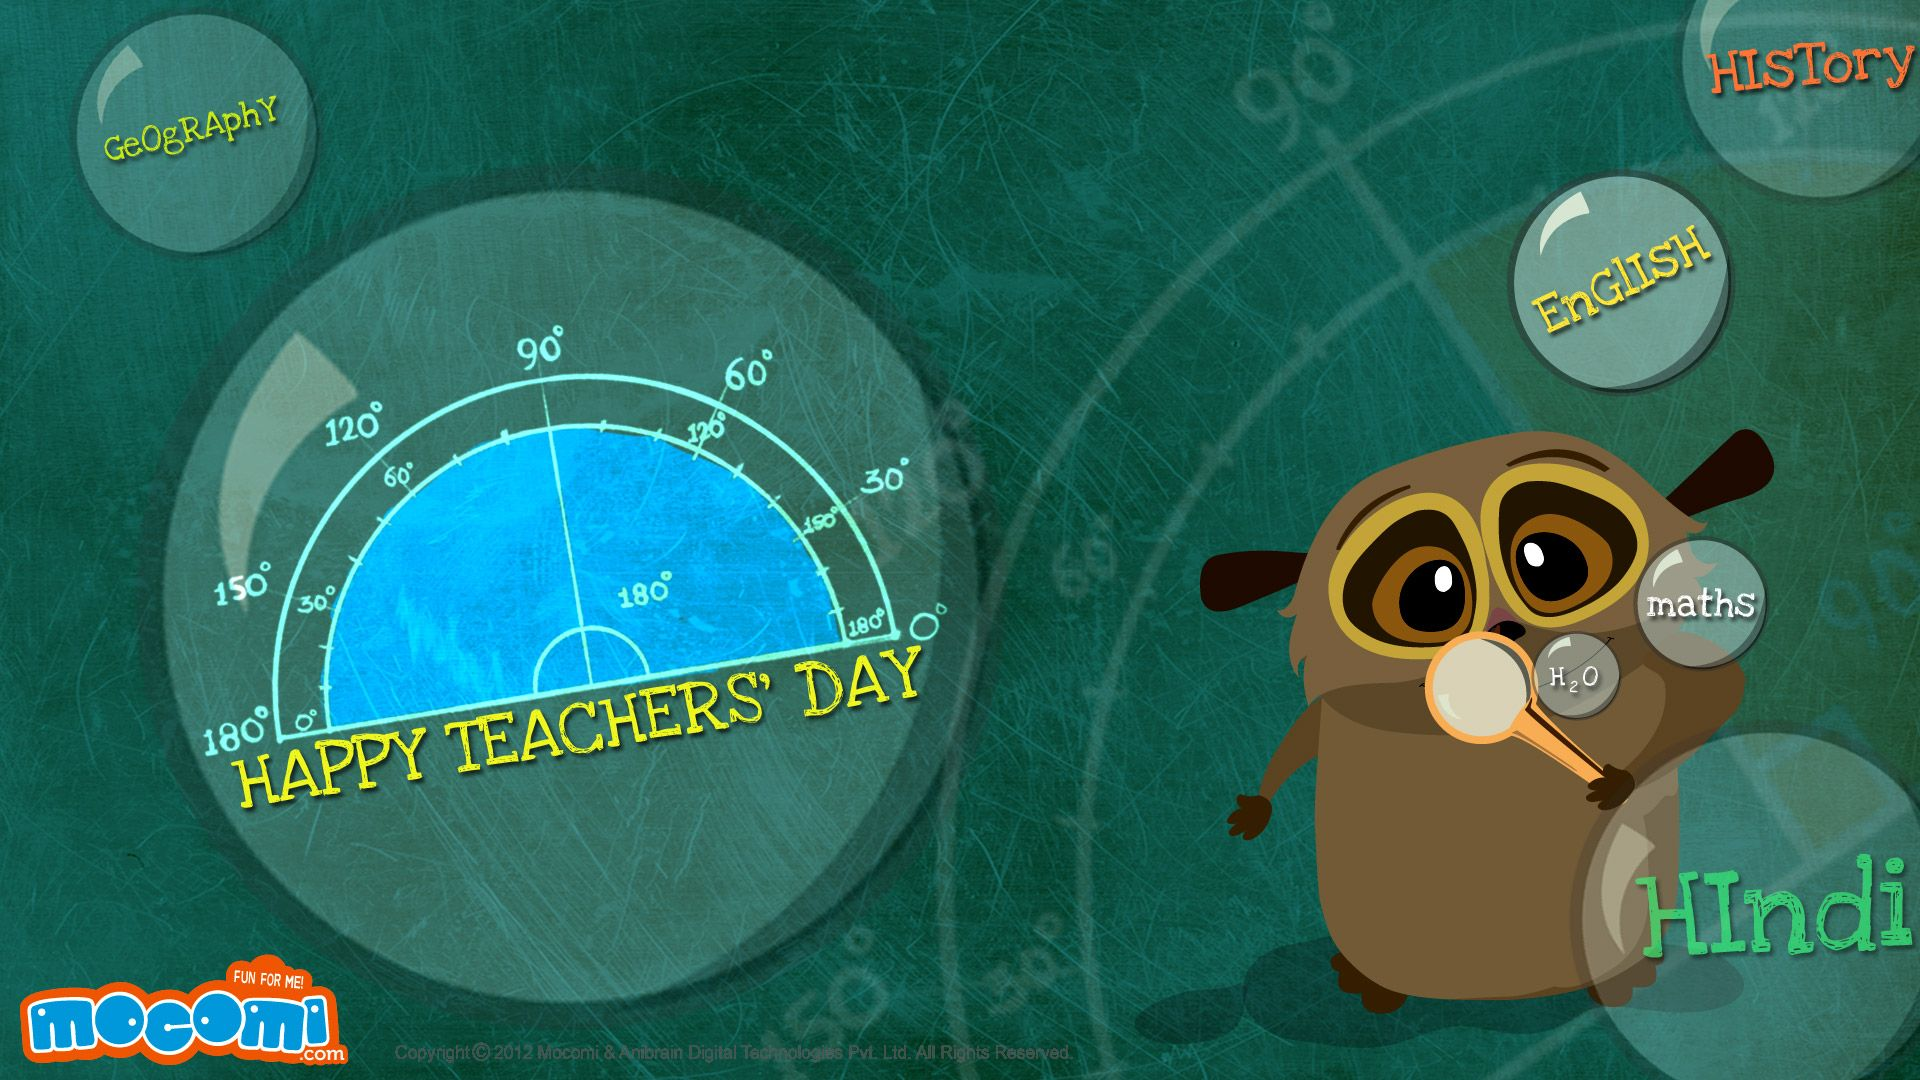 04 download these cool teachersday wallpapers which